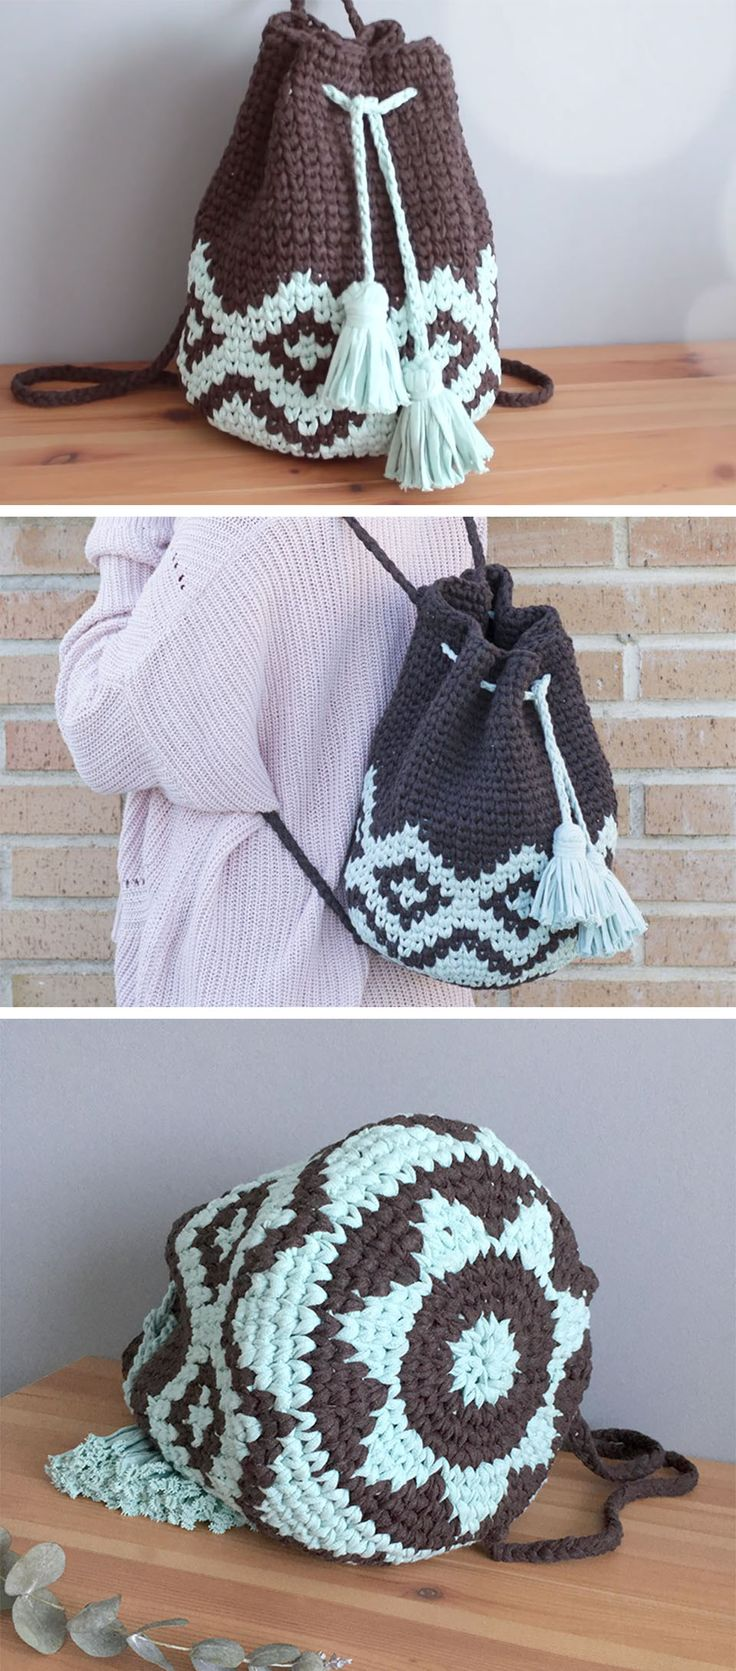 I'm showing you today an amazing tutorial how to make a crochet mochila tapestry. It will be very useful resource for your daily use or for your summer vacations. Do you need something cool and fresh for your summer holidays? Here is a nice idea for creating a crochet mochila tapestry, that fashion touch on your daily look.…